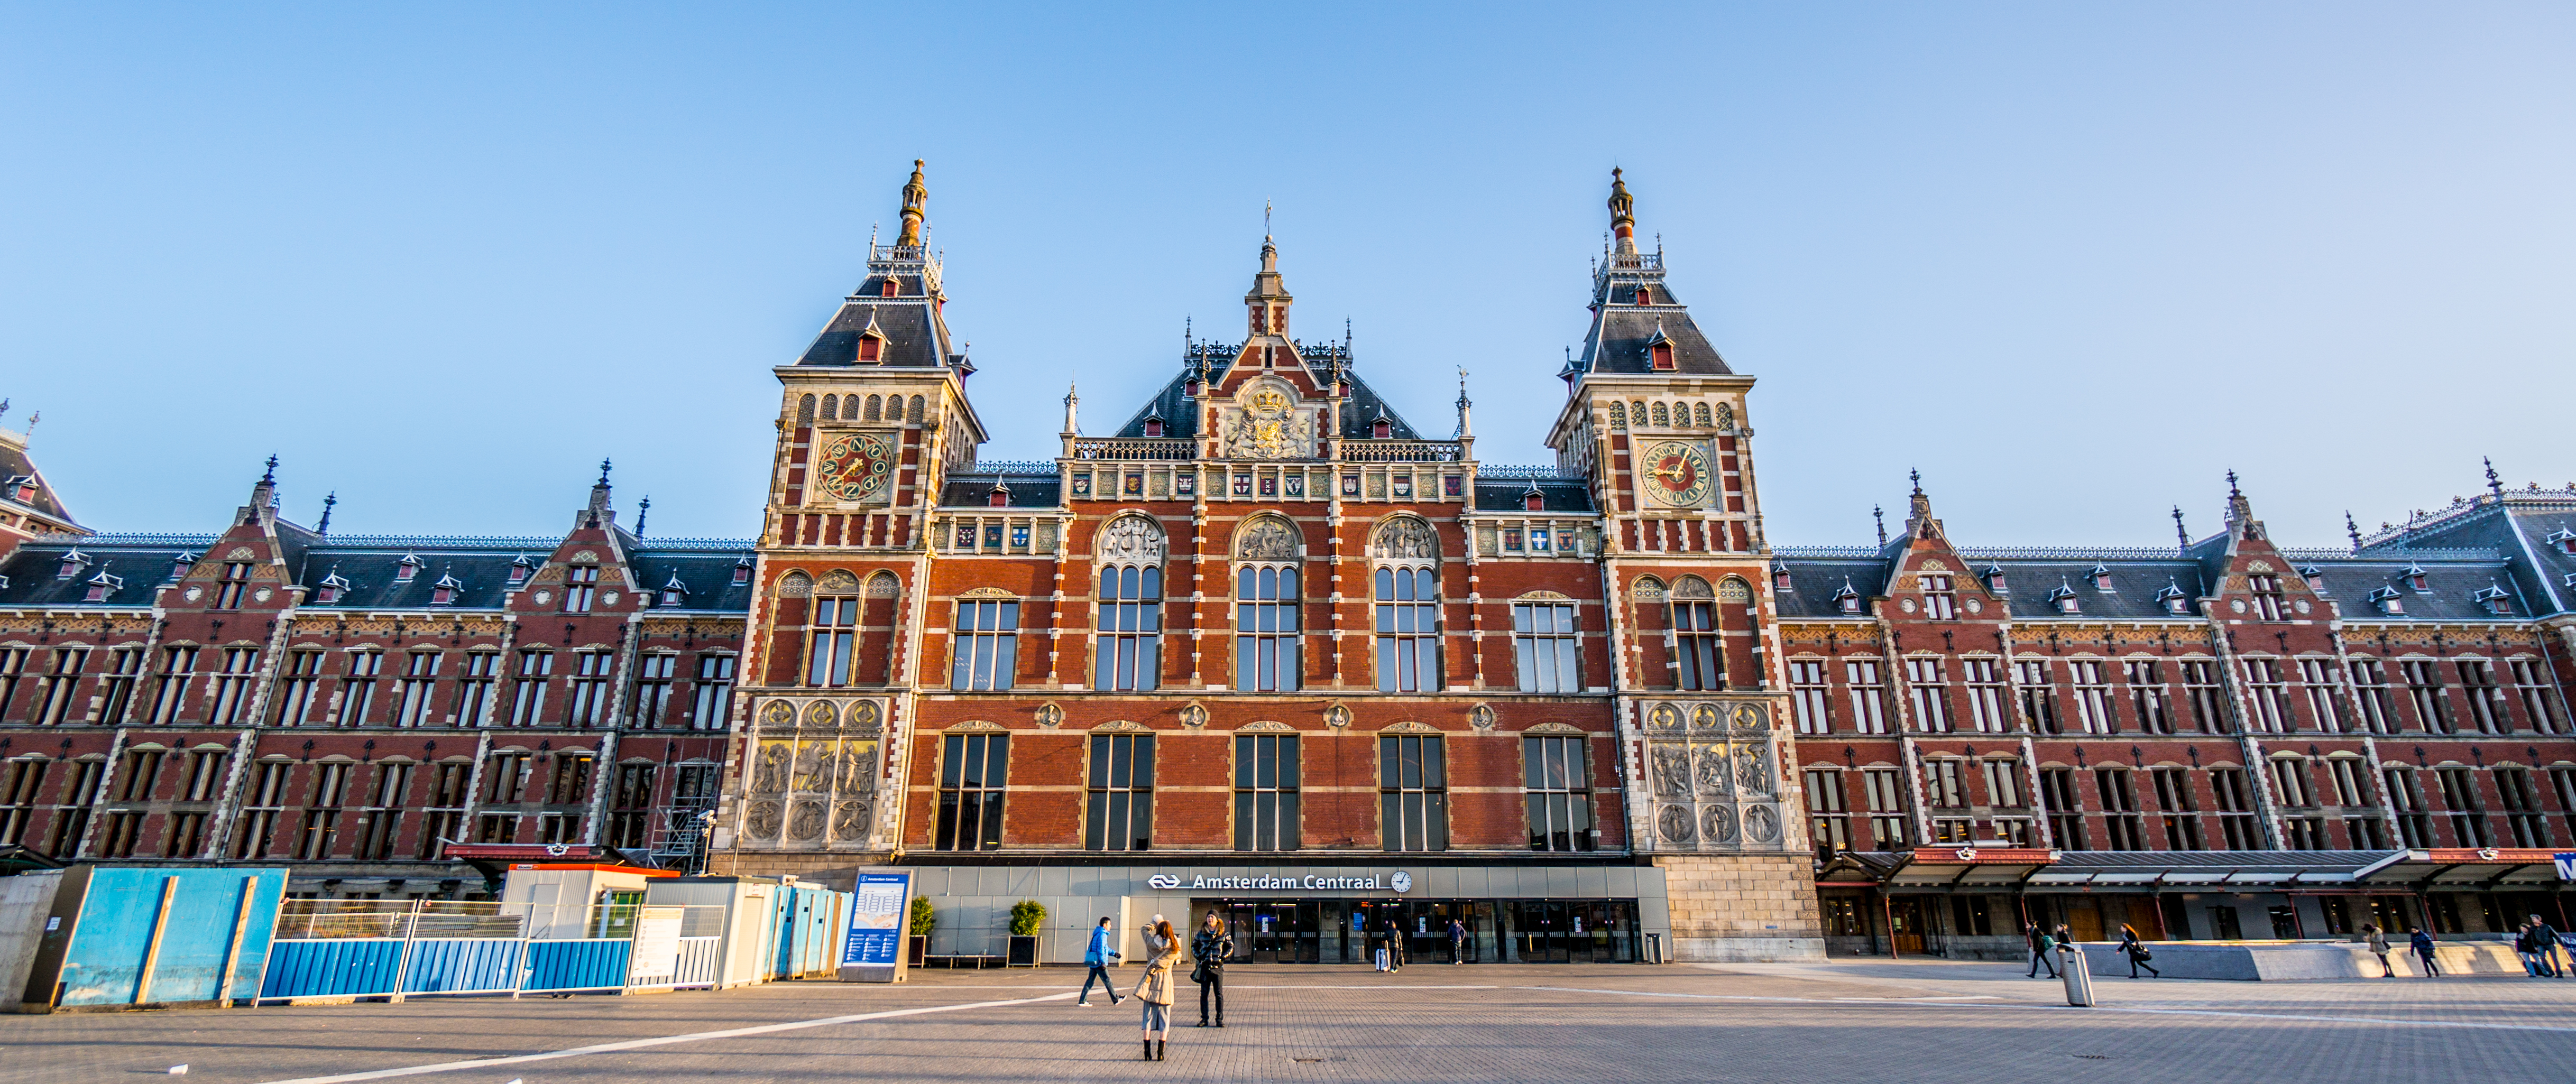 Amsterdam_Central_Station1